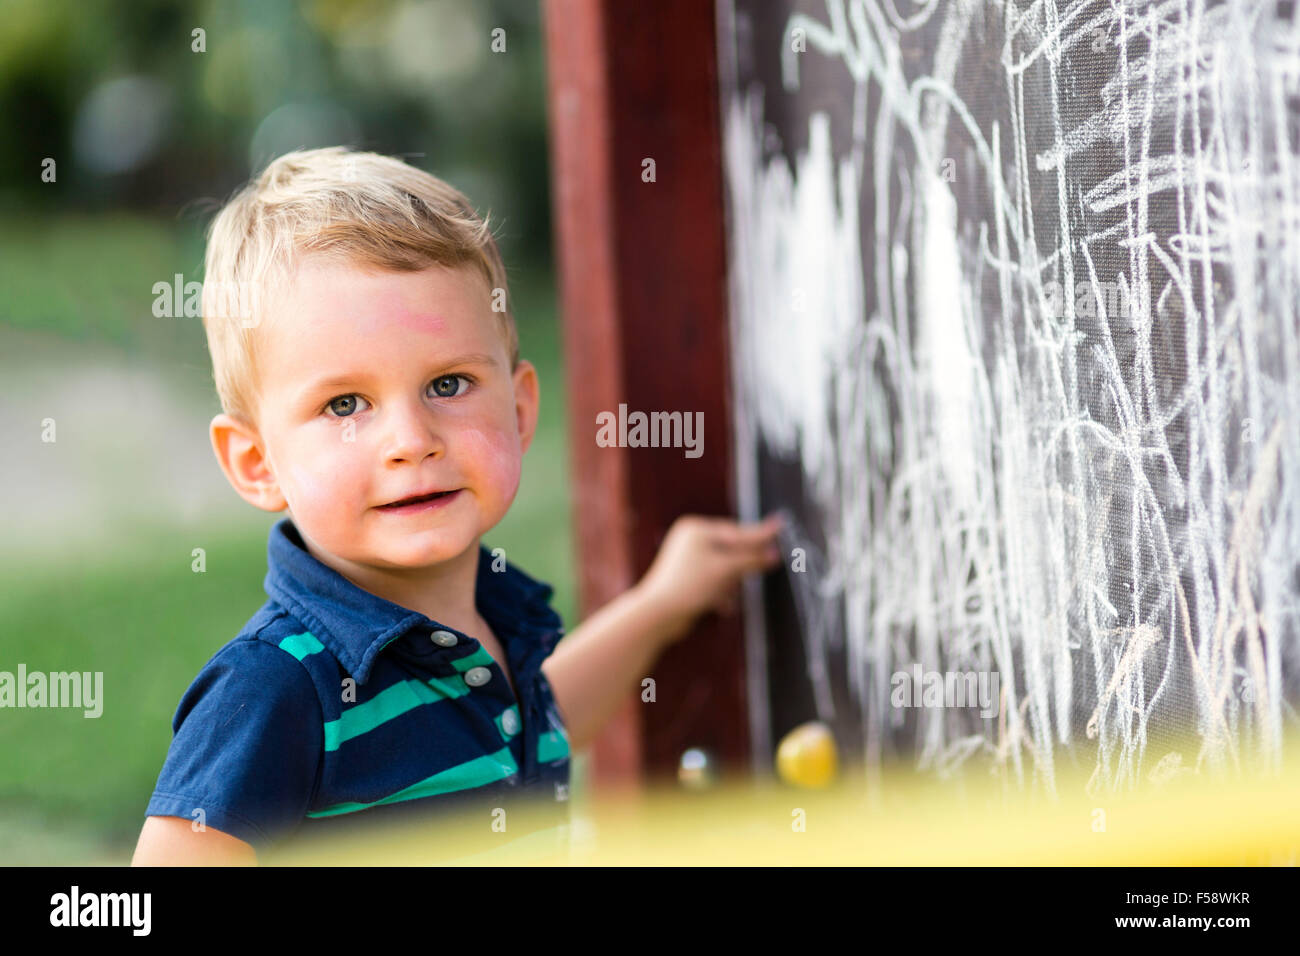 Creative cute toddler drawing with chalk outdoors - Stock Image